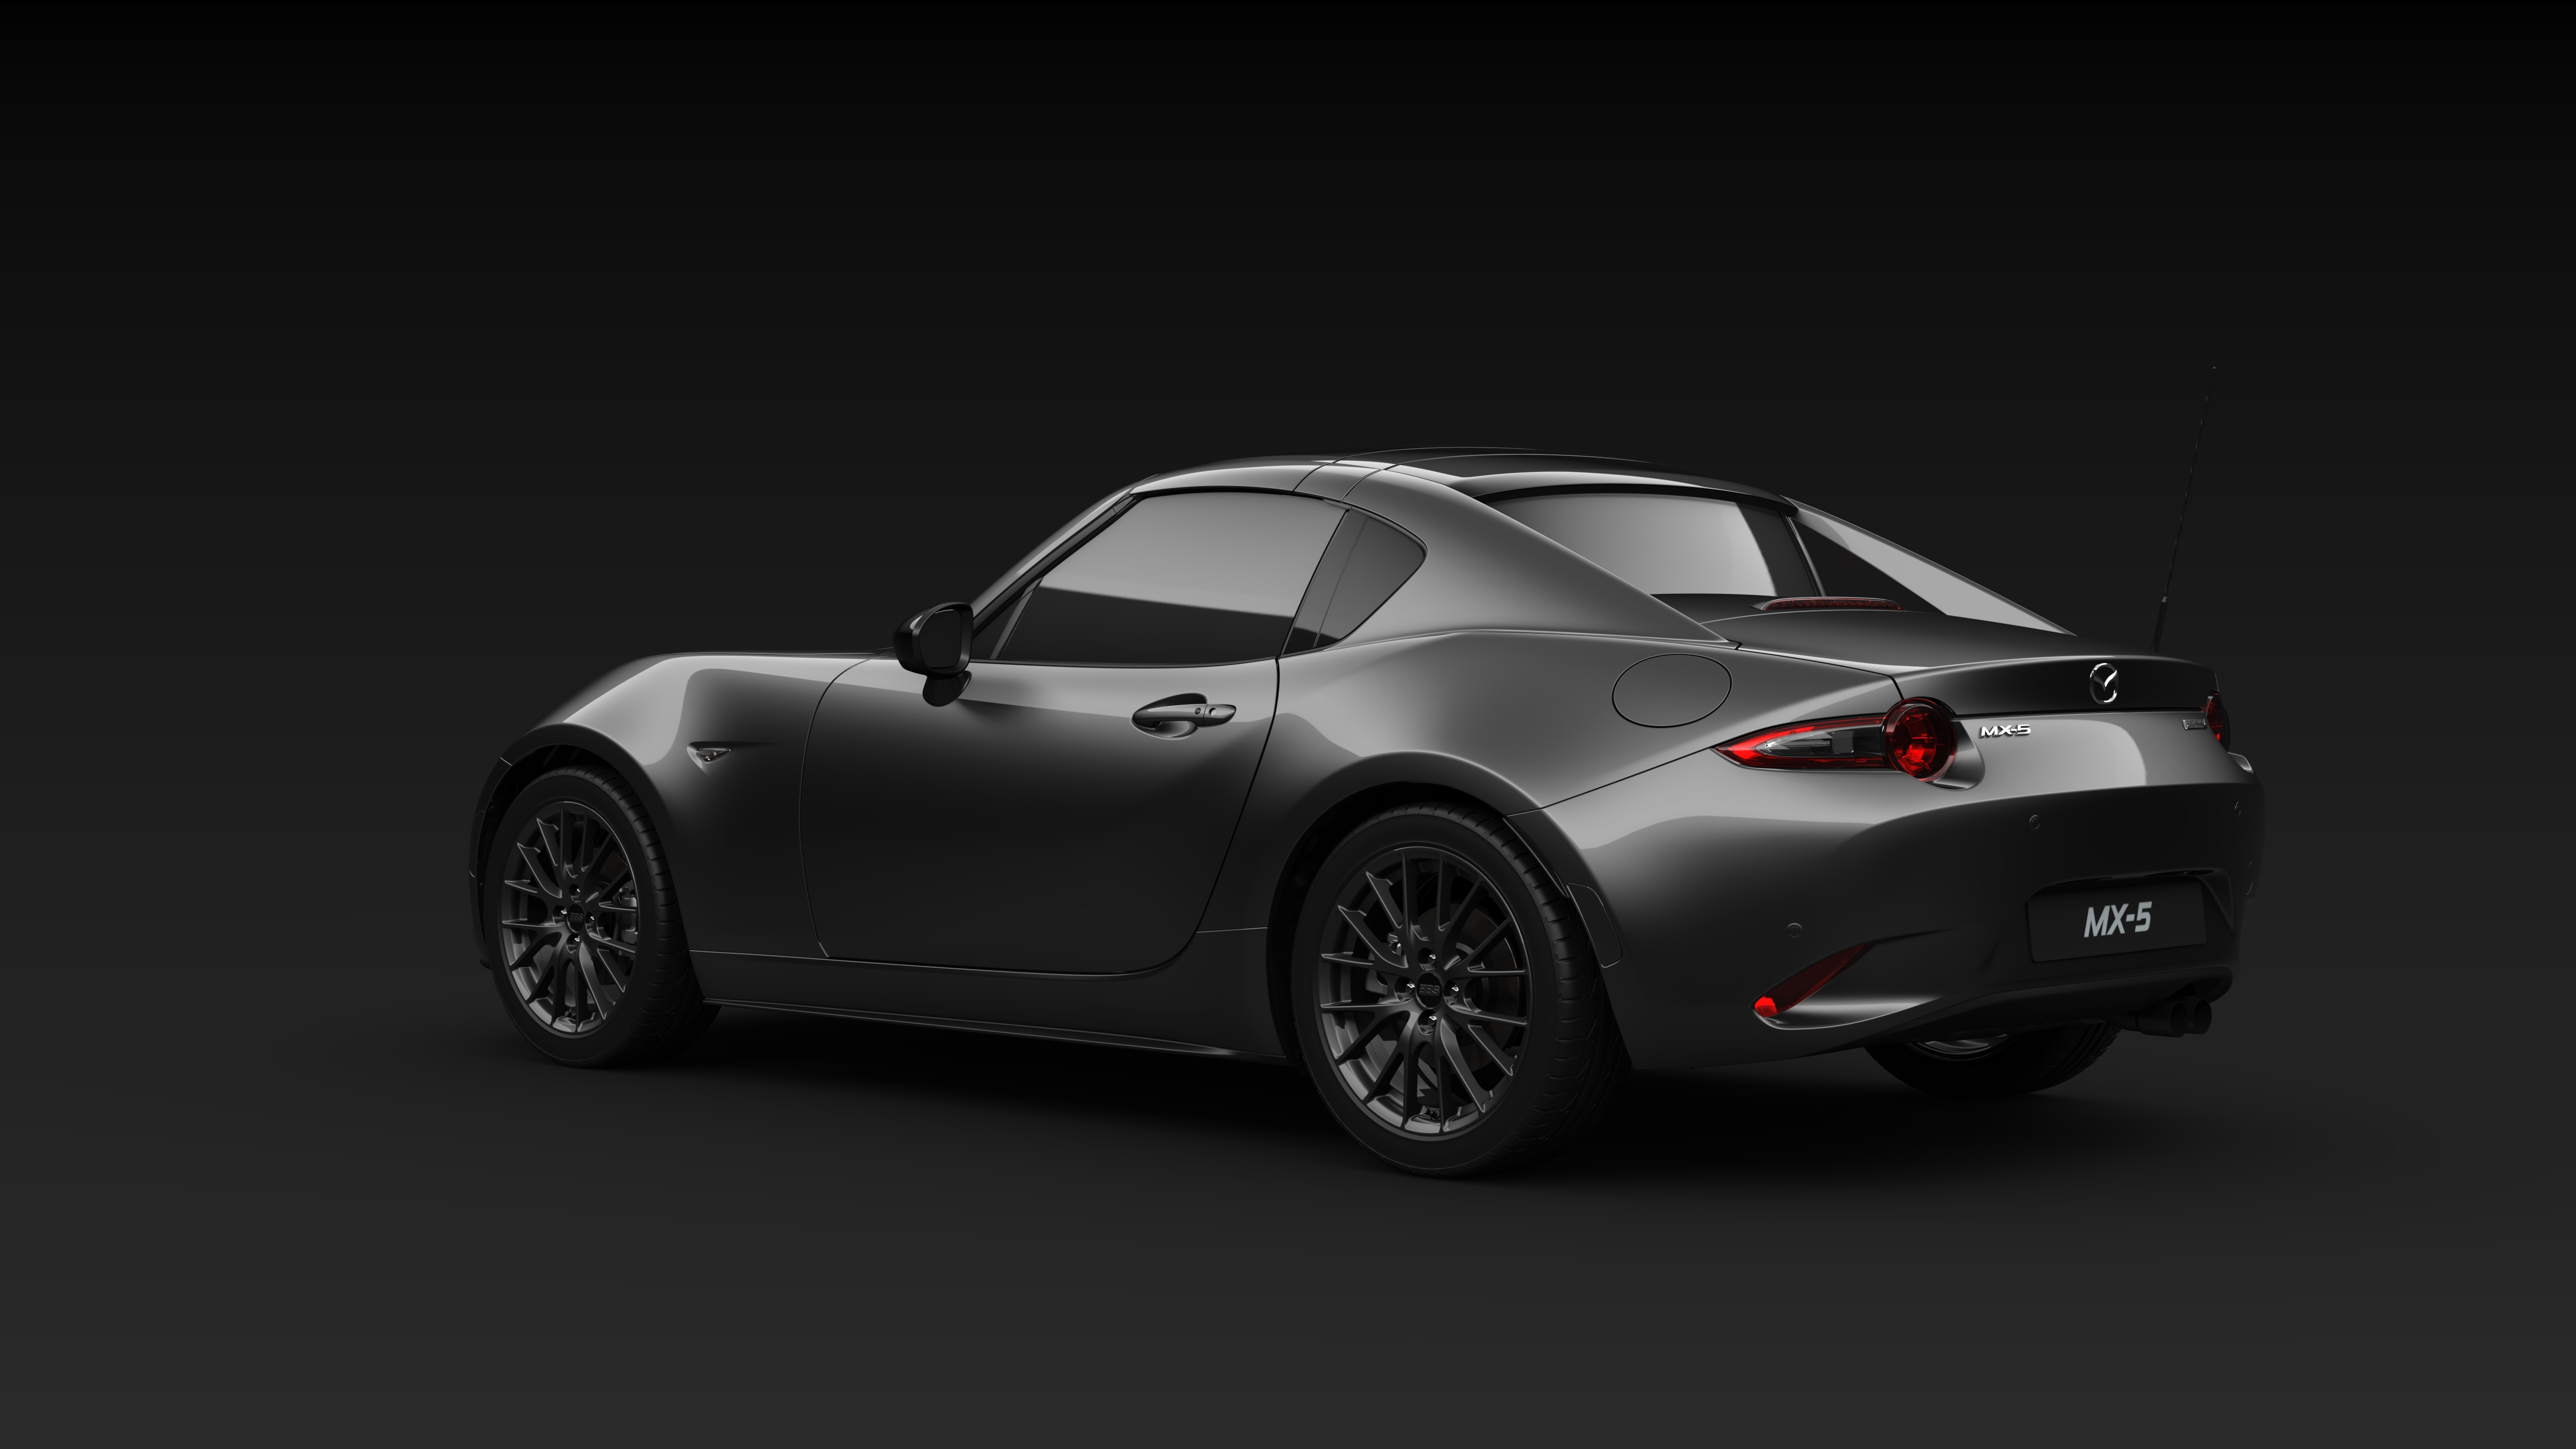 mazda mx 5 des ventes records en france. Black Bedroom Furniture Sets. Home Design Ideas